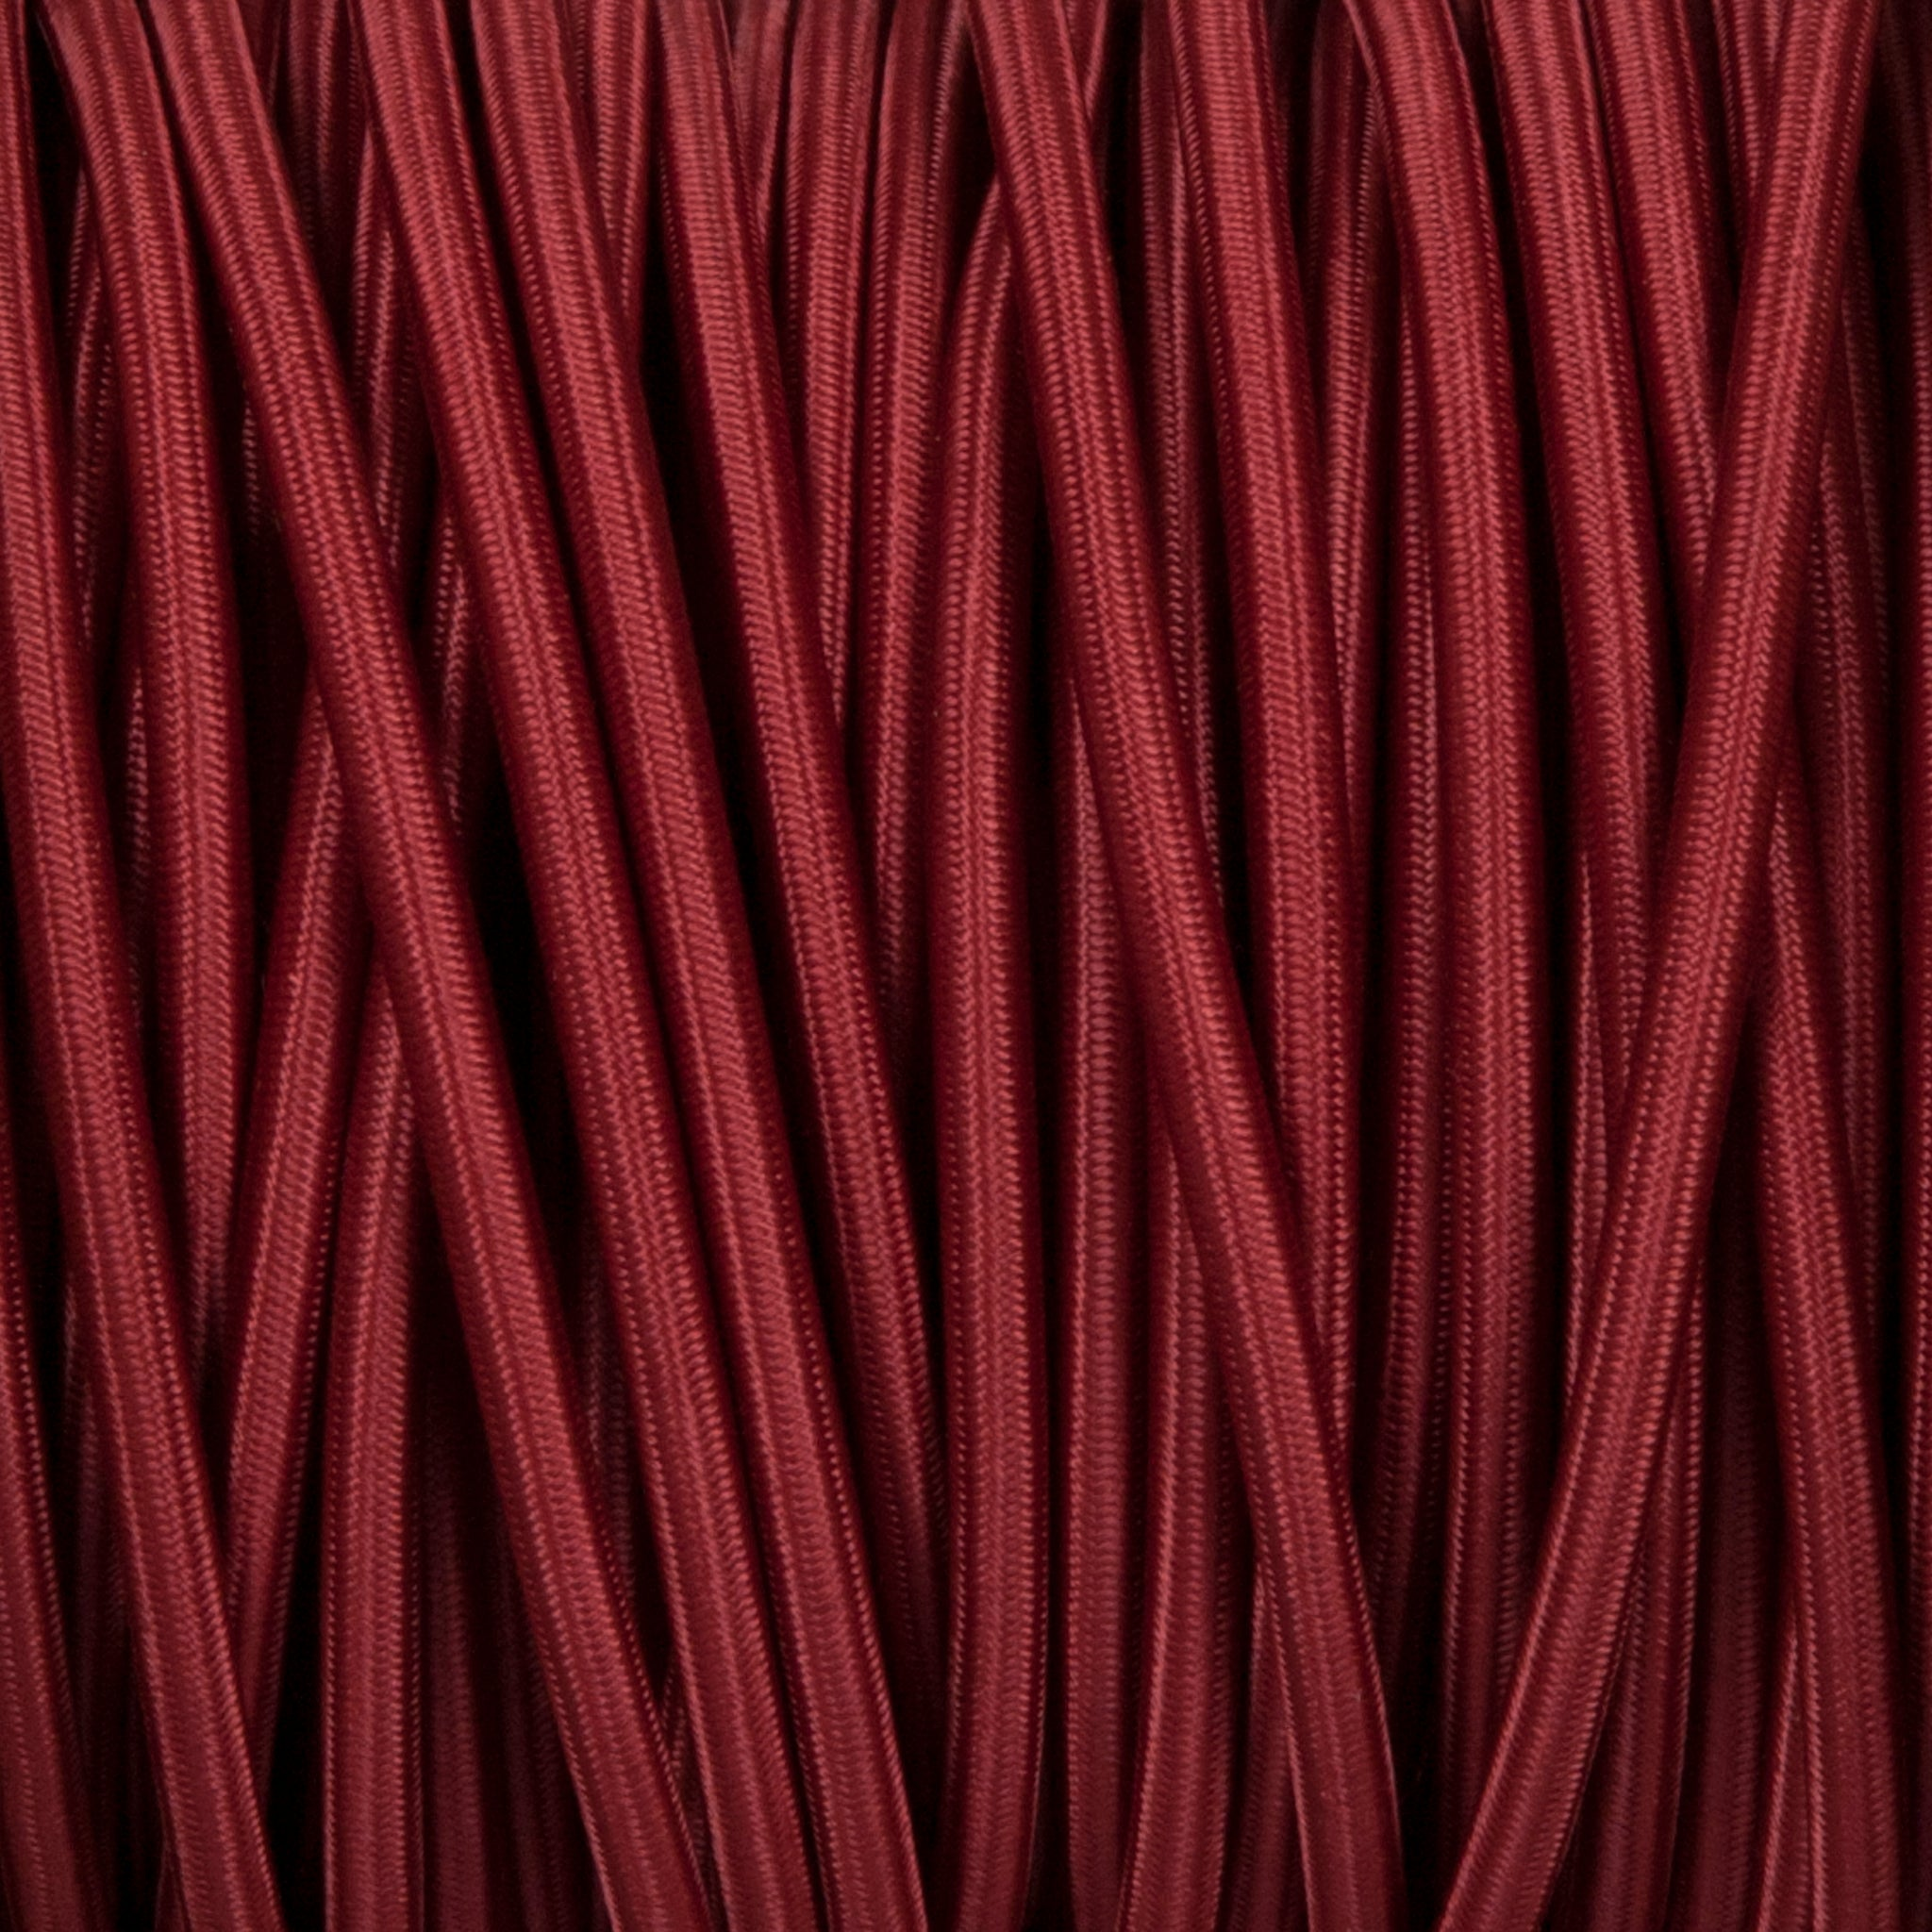 Round lighting cable - Burgundy braided fabric